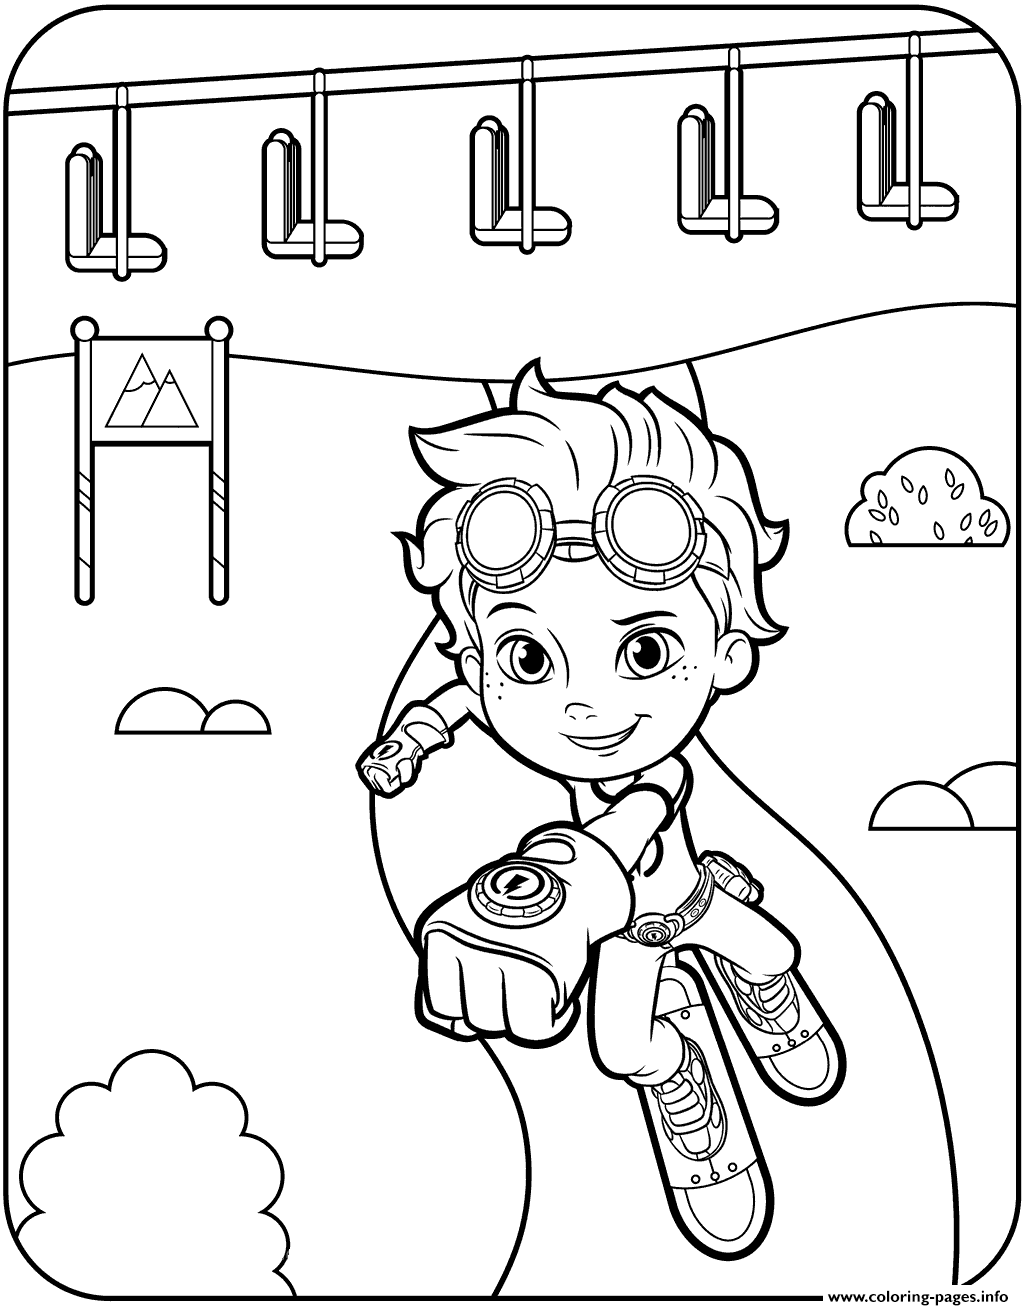 rusty rivets coloring pages Free Printable Rusty Rivets Coloring Pages Printable rusty rivets coloring pages